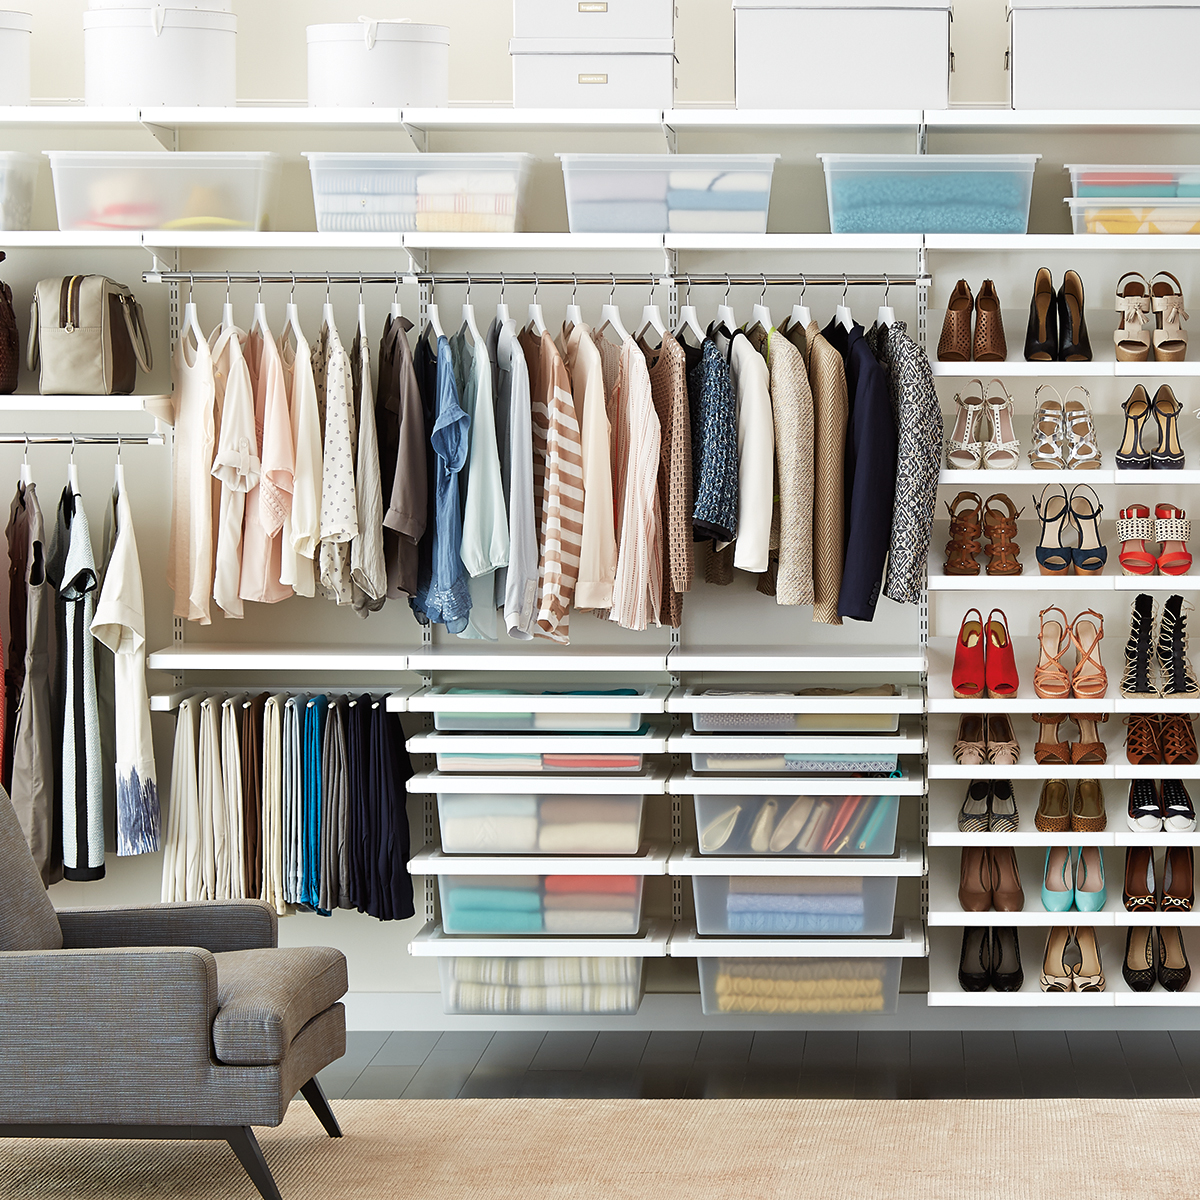 Most functional and attractive elfa closet